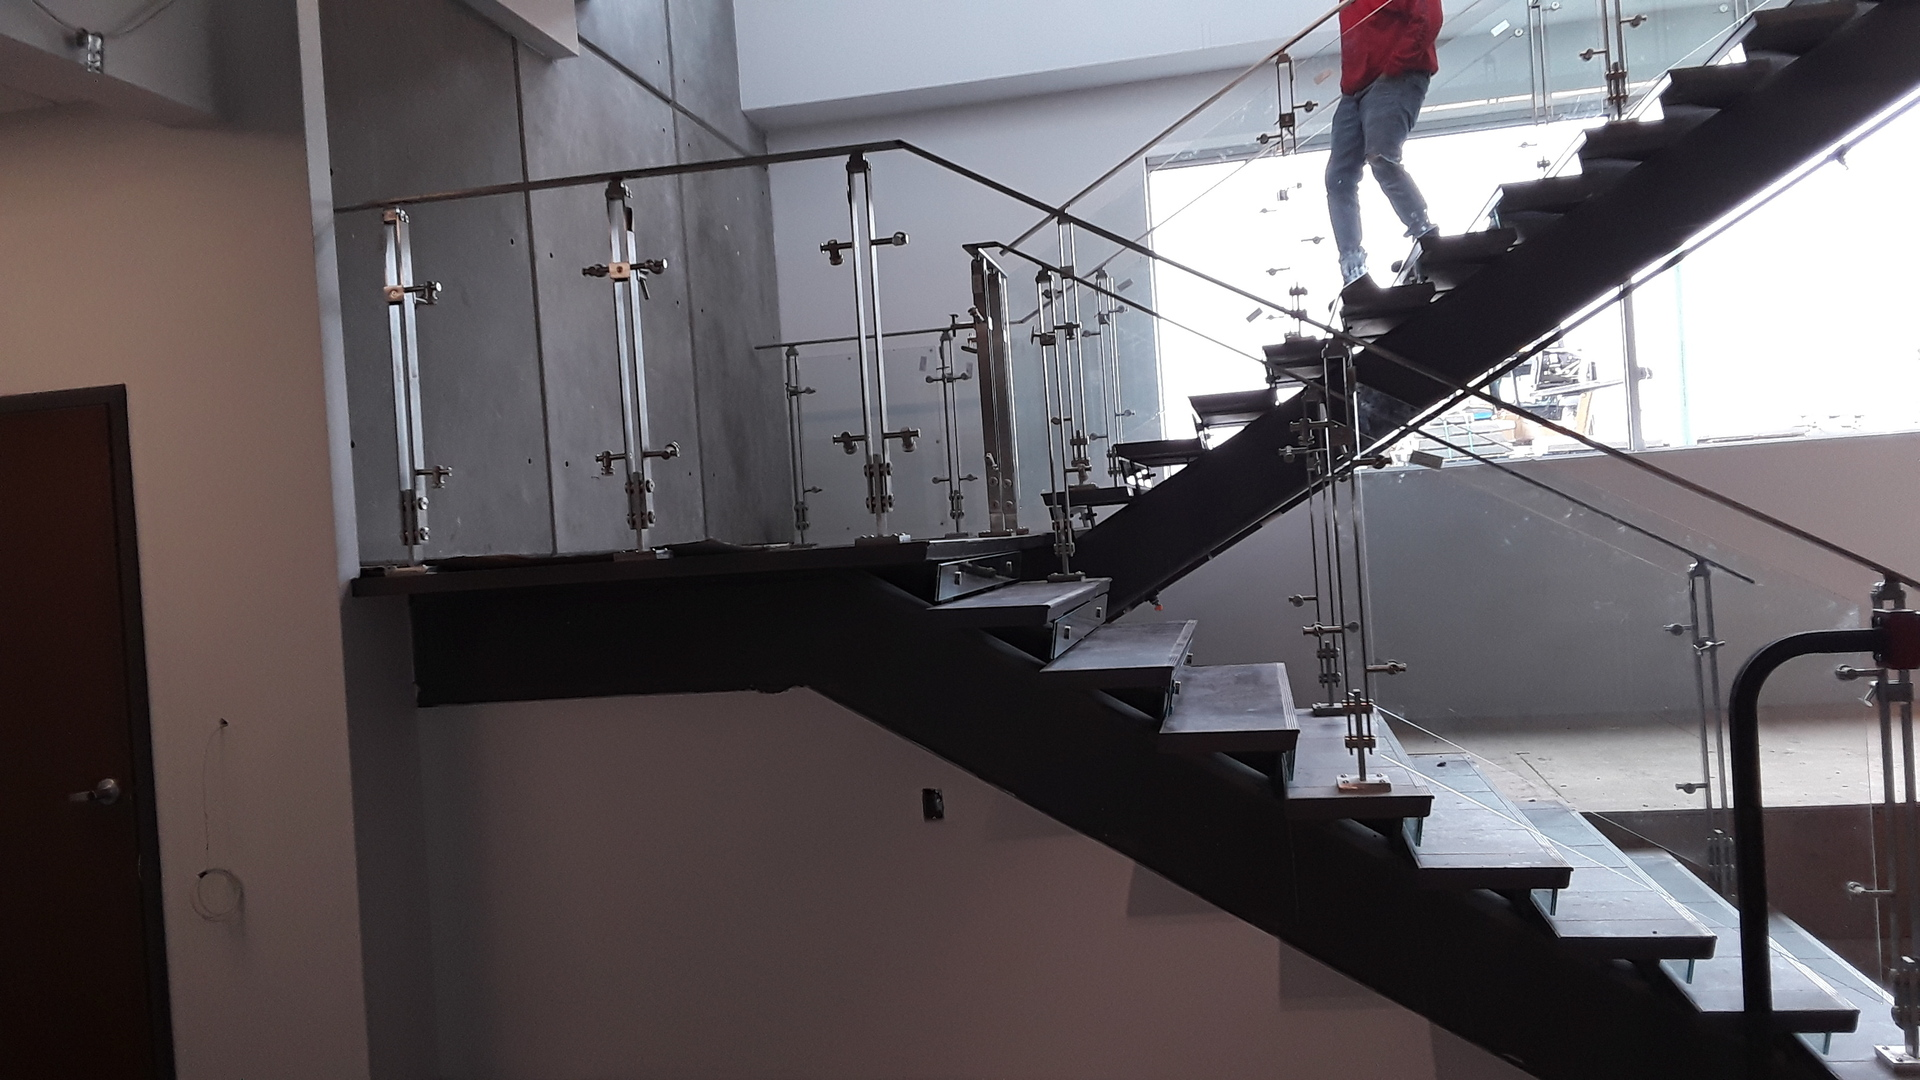 Seen here is Denver Glass Interiors glass railings which are being installed to this education building.